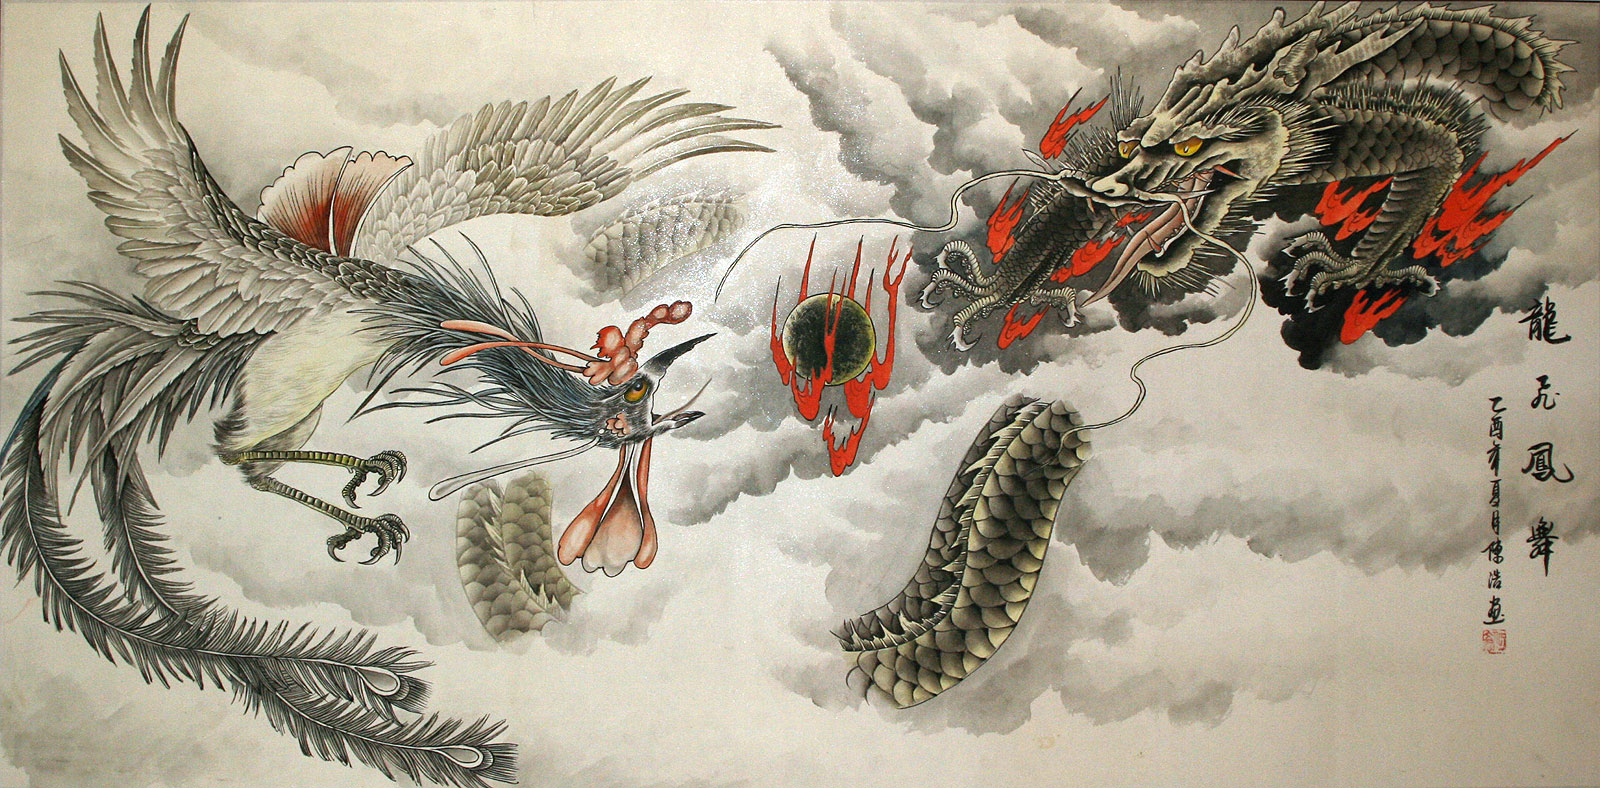 Huge Dragon and Phoenix Painting - Tigers & Dragons ...